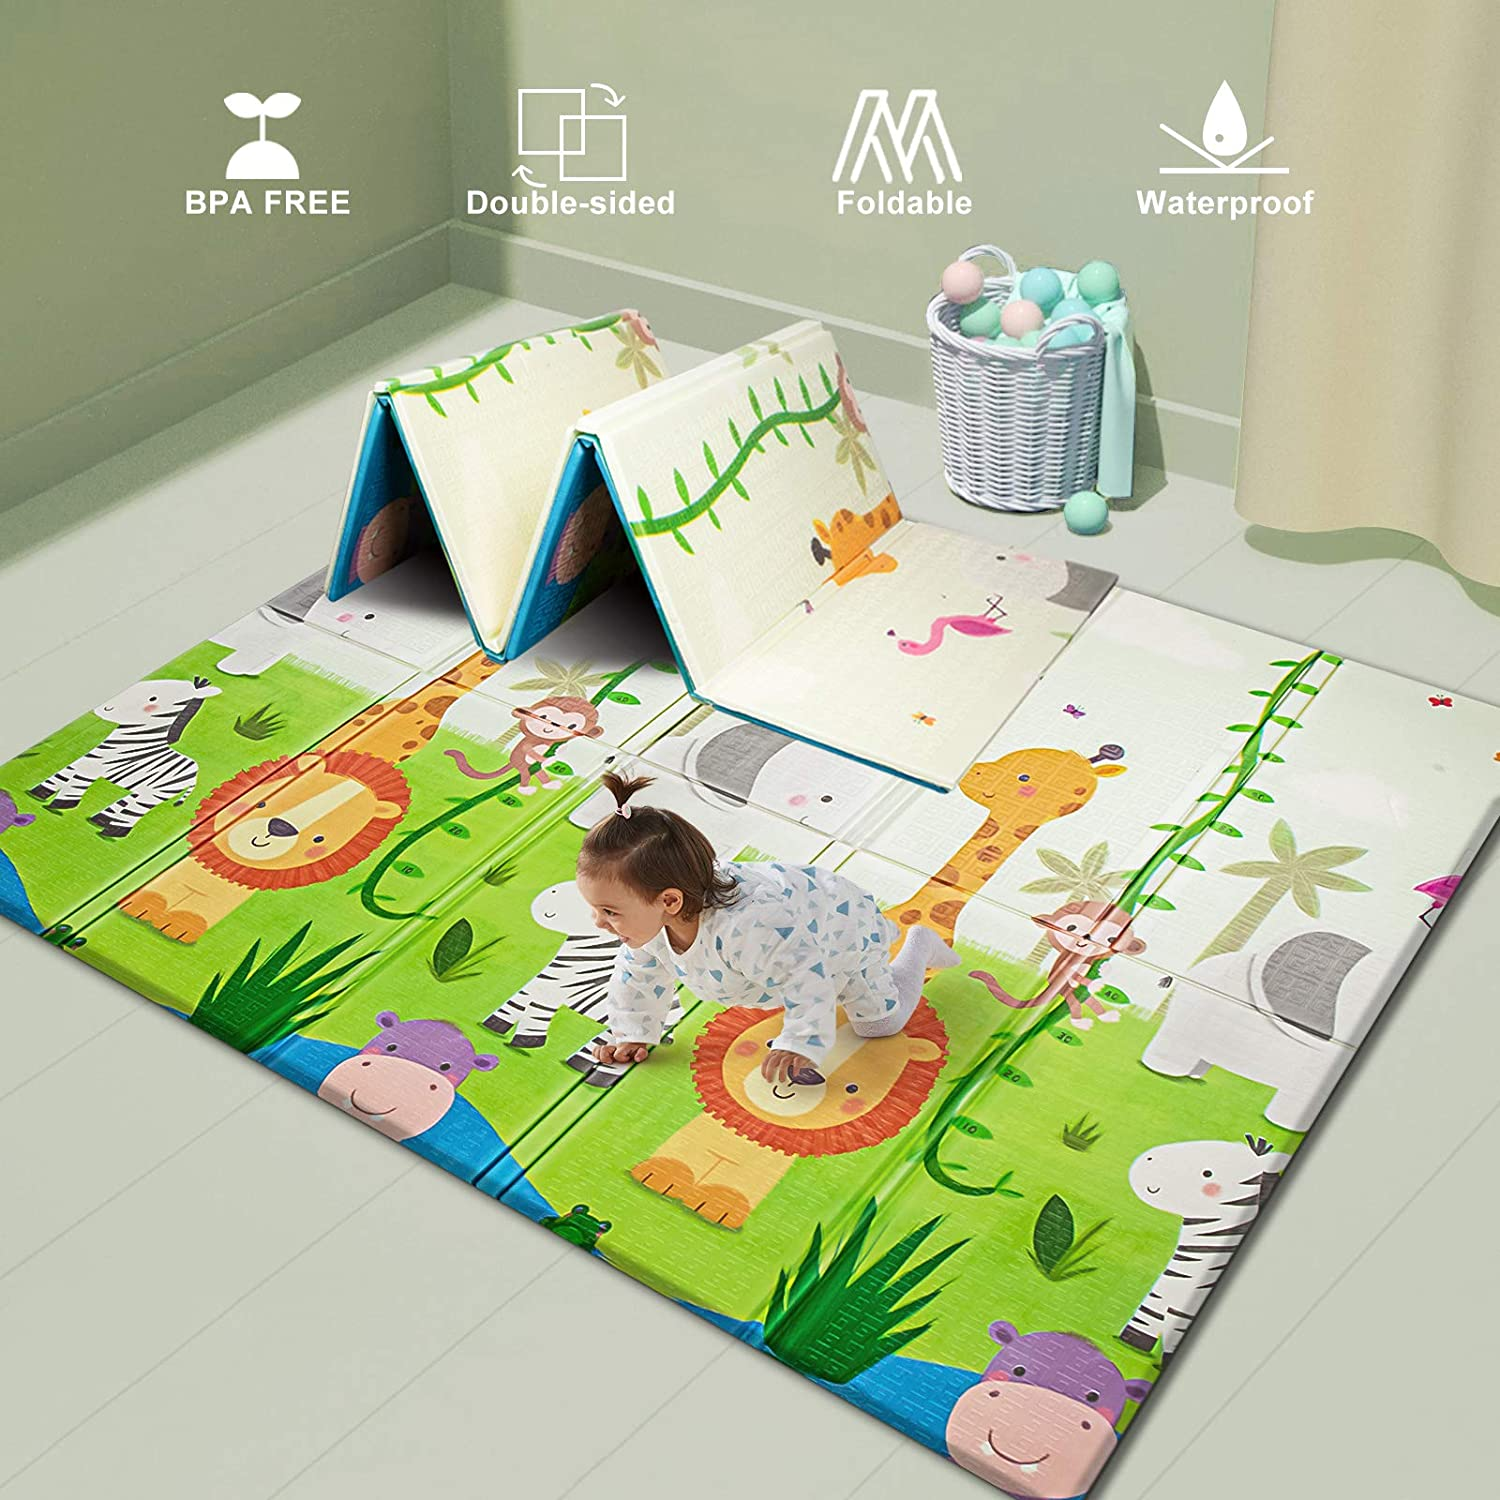 Uanlauo Baby Play mat, Foam Playmat Extra Large Thick Crawling playmat £31.19 with 40% voucher @ Amazon